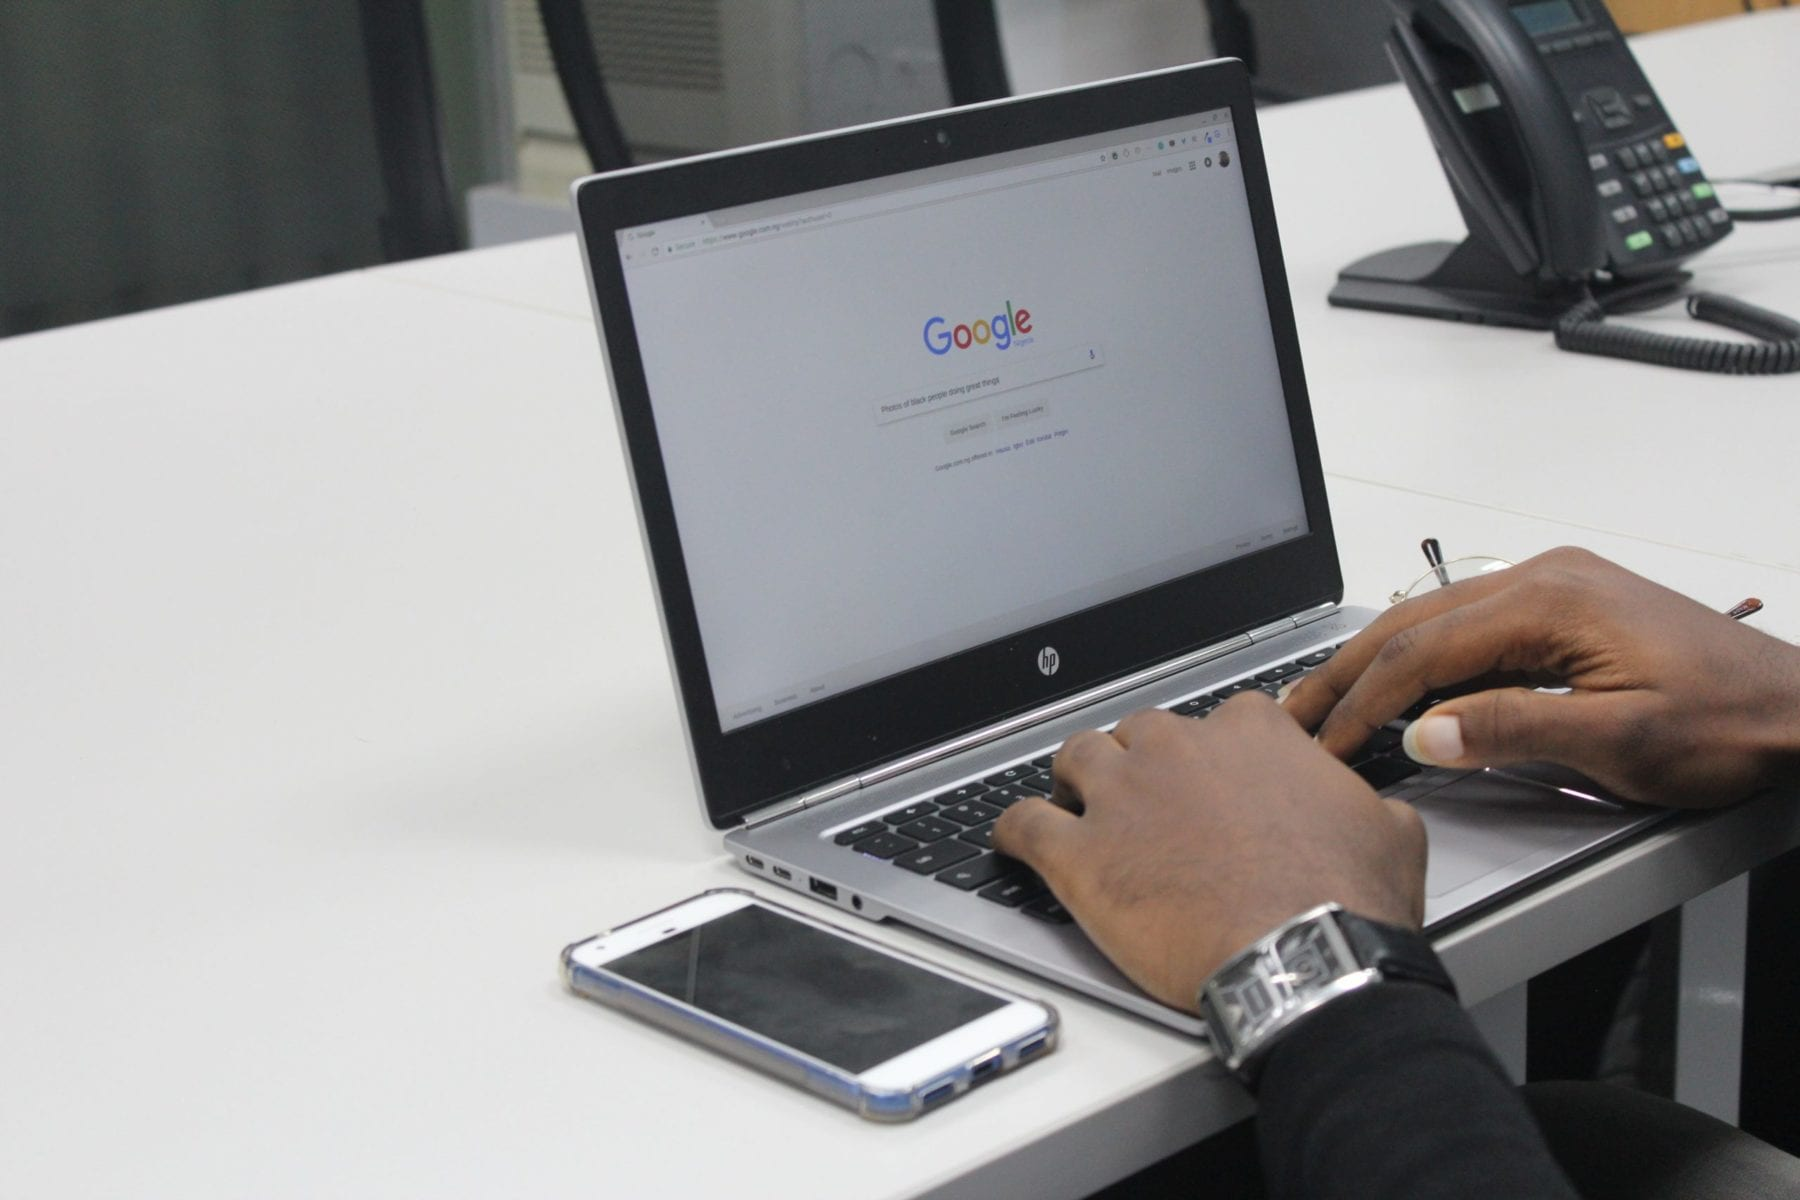 Google offers distance learning training